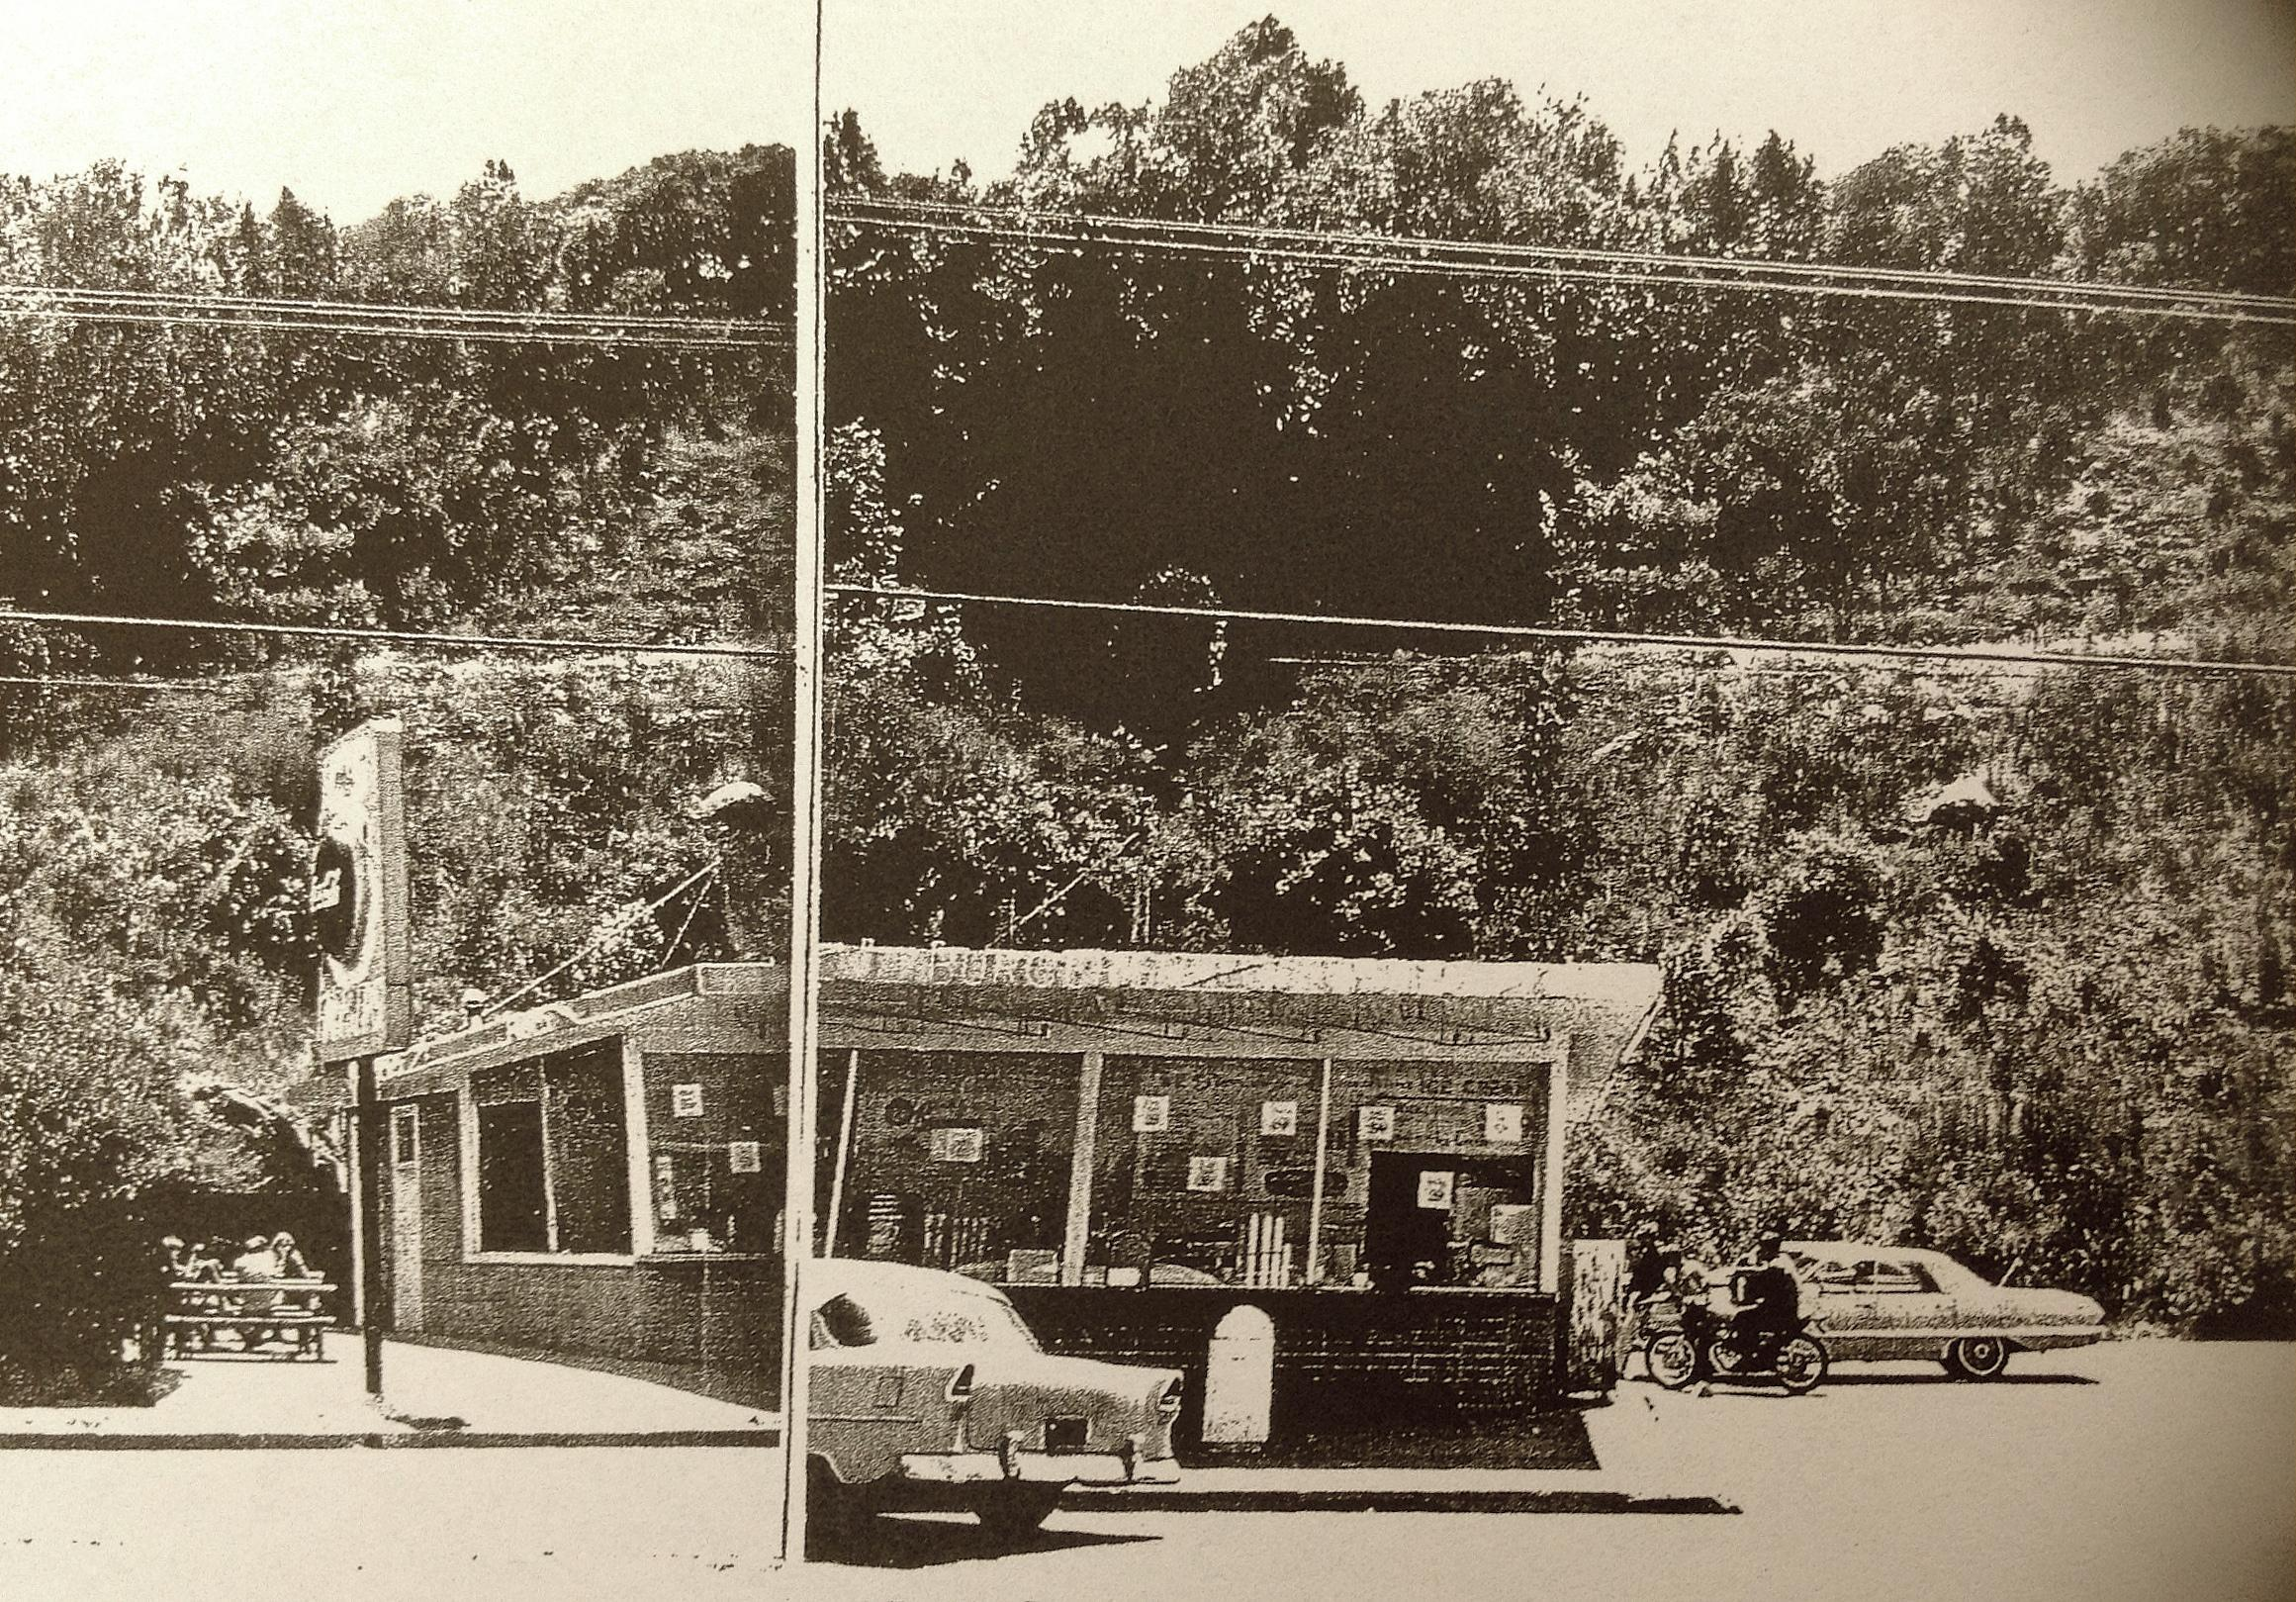 C's Drive In – 1960s